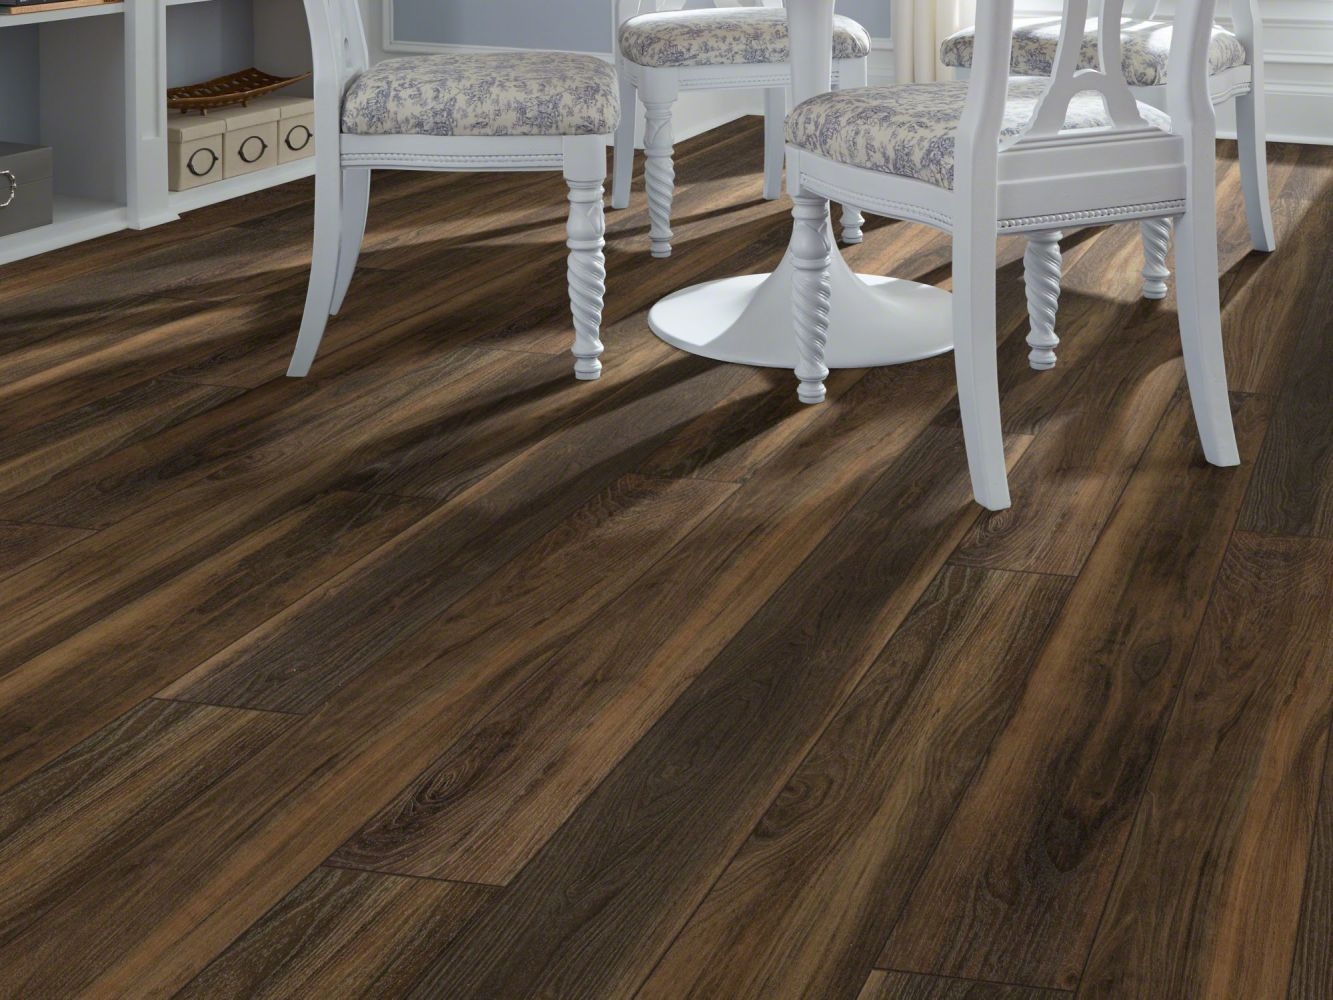 Shaw Floors Resilient Residential Pantheon HD Plus Terreno 00737_2001V